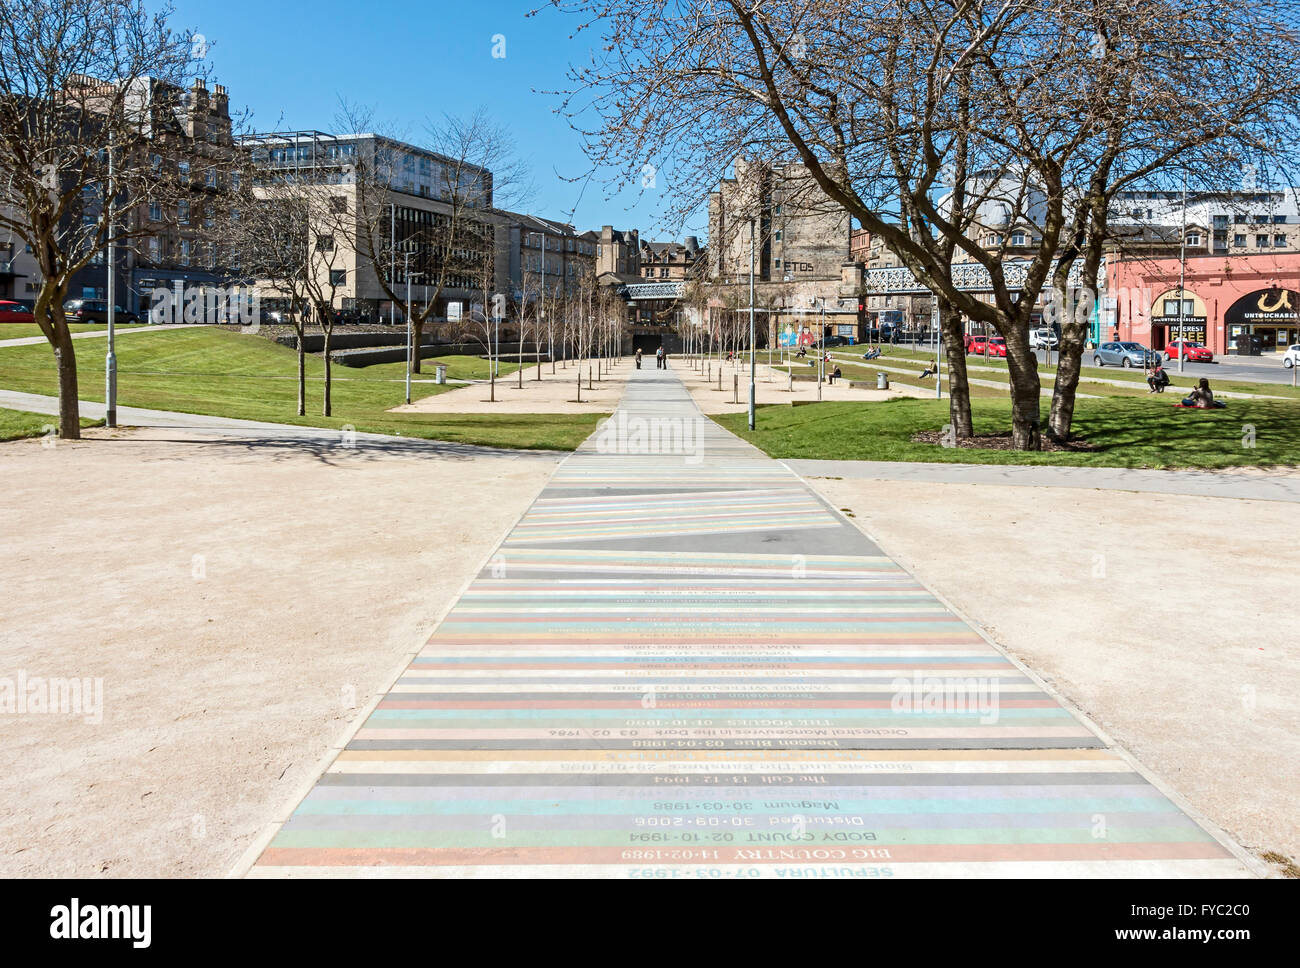 Open space called Barrowland Park at Glasgow Cross between Molendinar Street and Gallowgate in central Glasgow Scotland - Stock Image